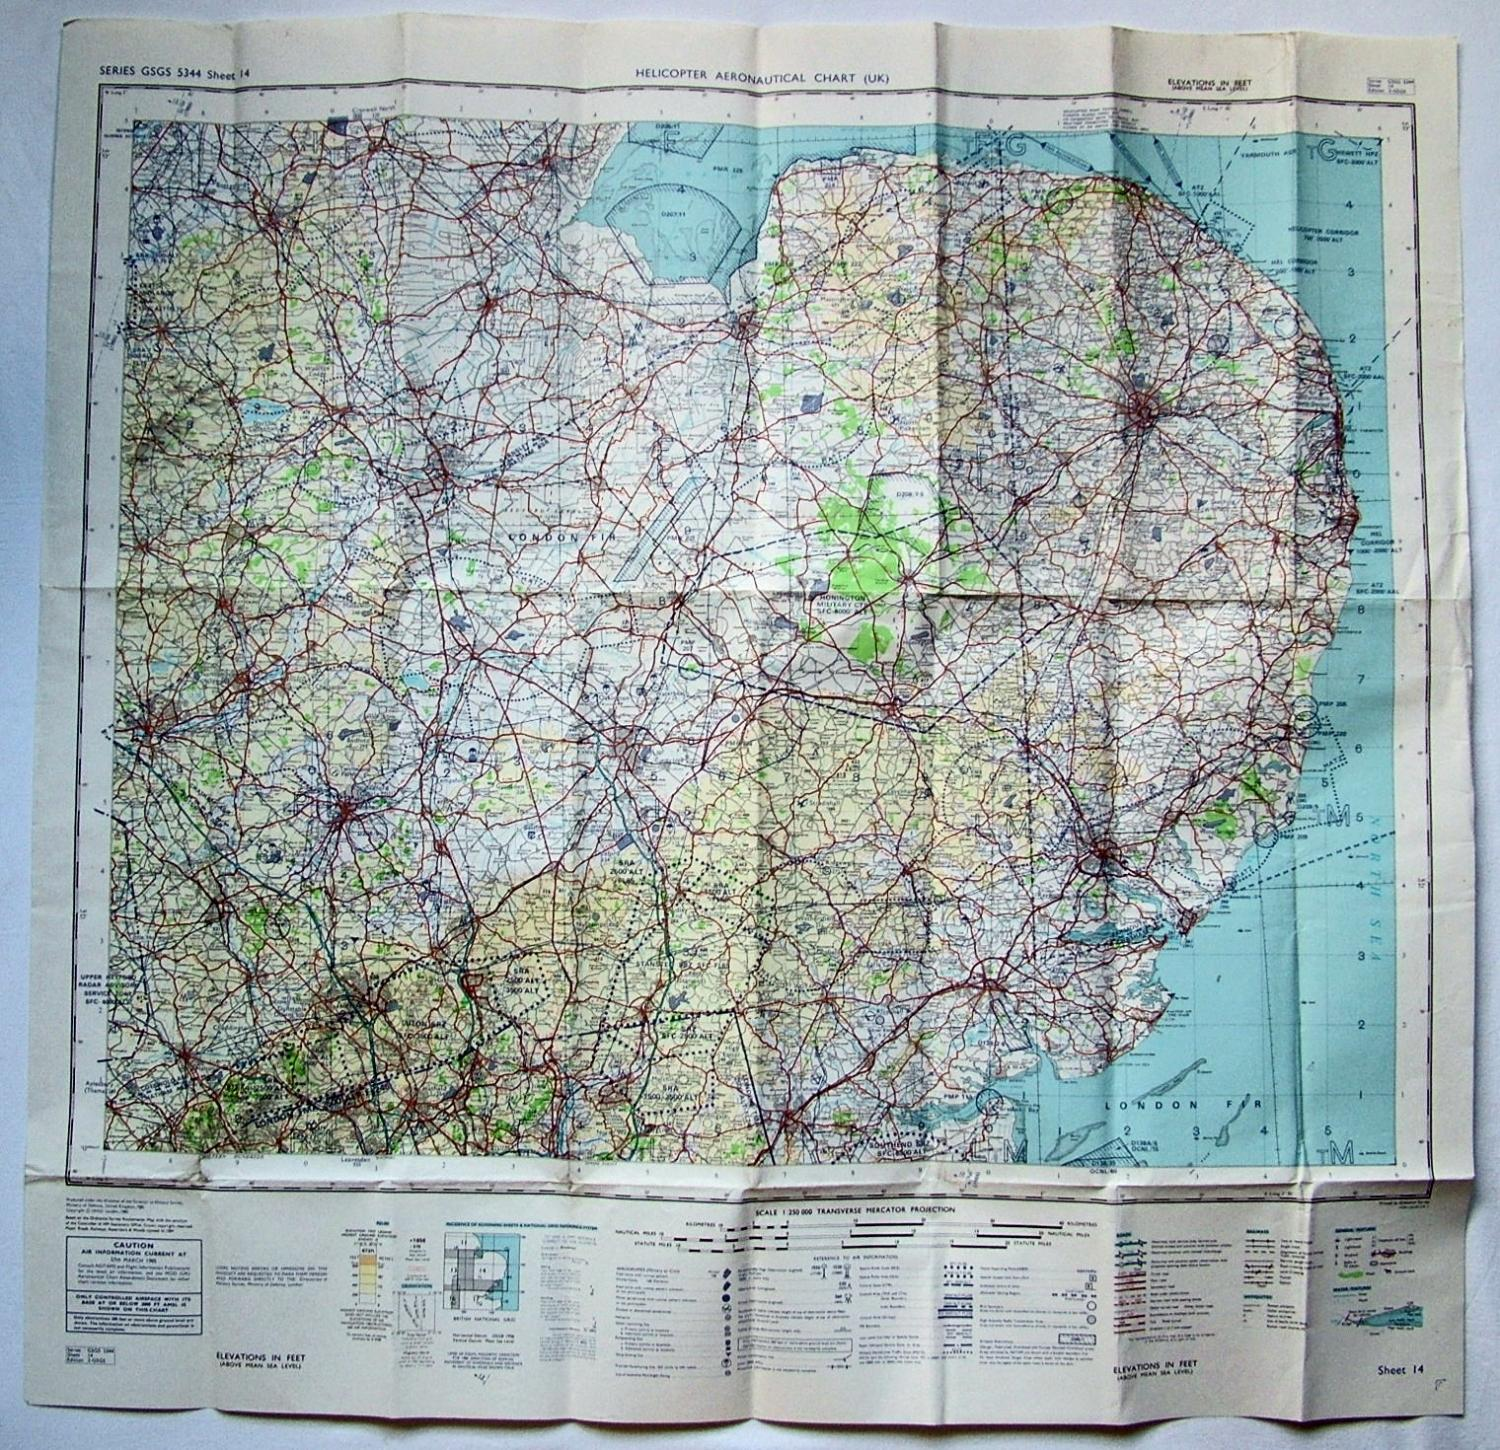 Helicopter Aeronautical Chart (UK)